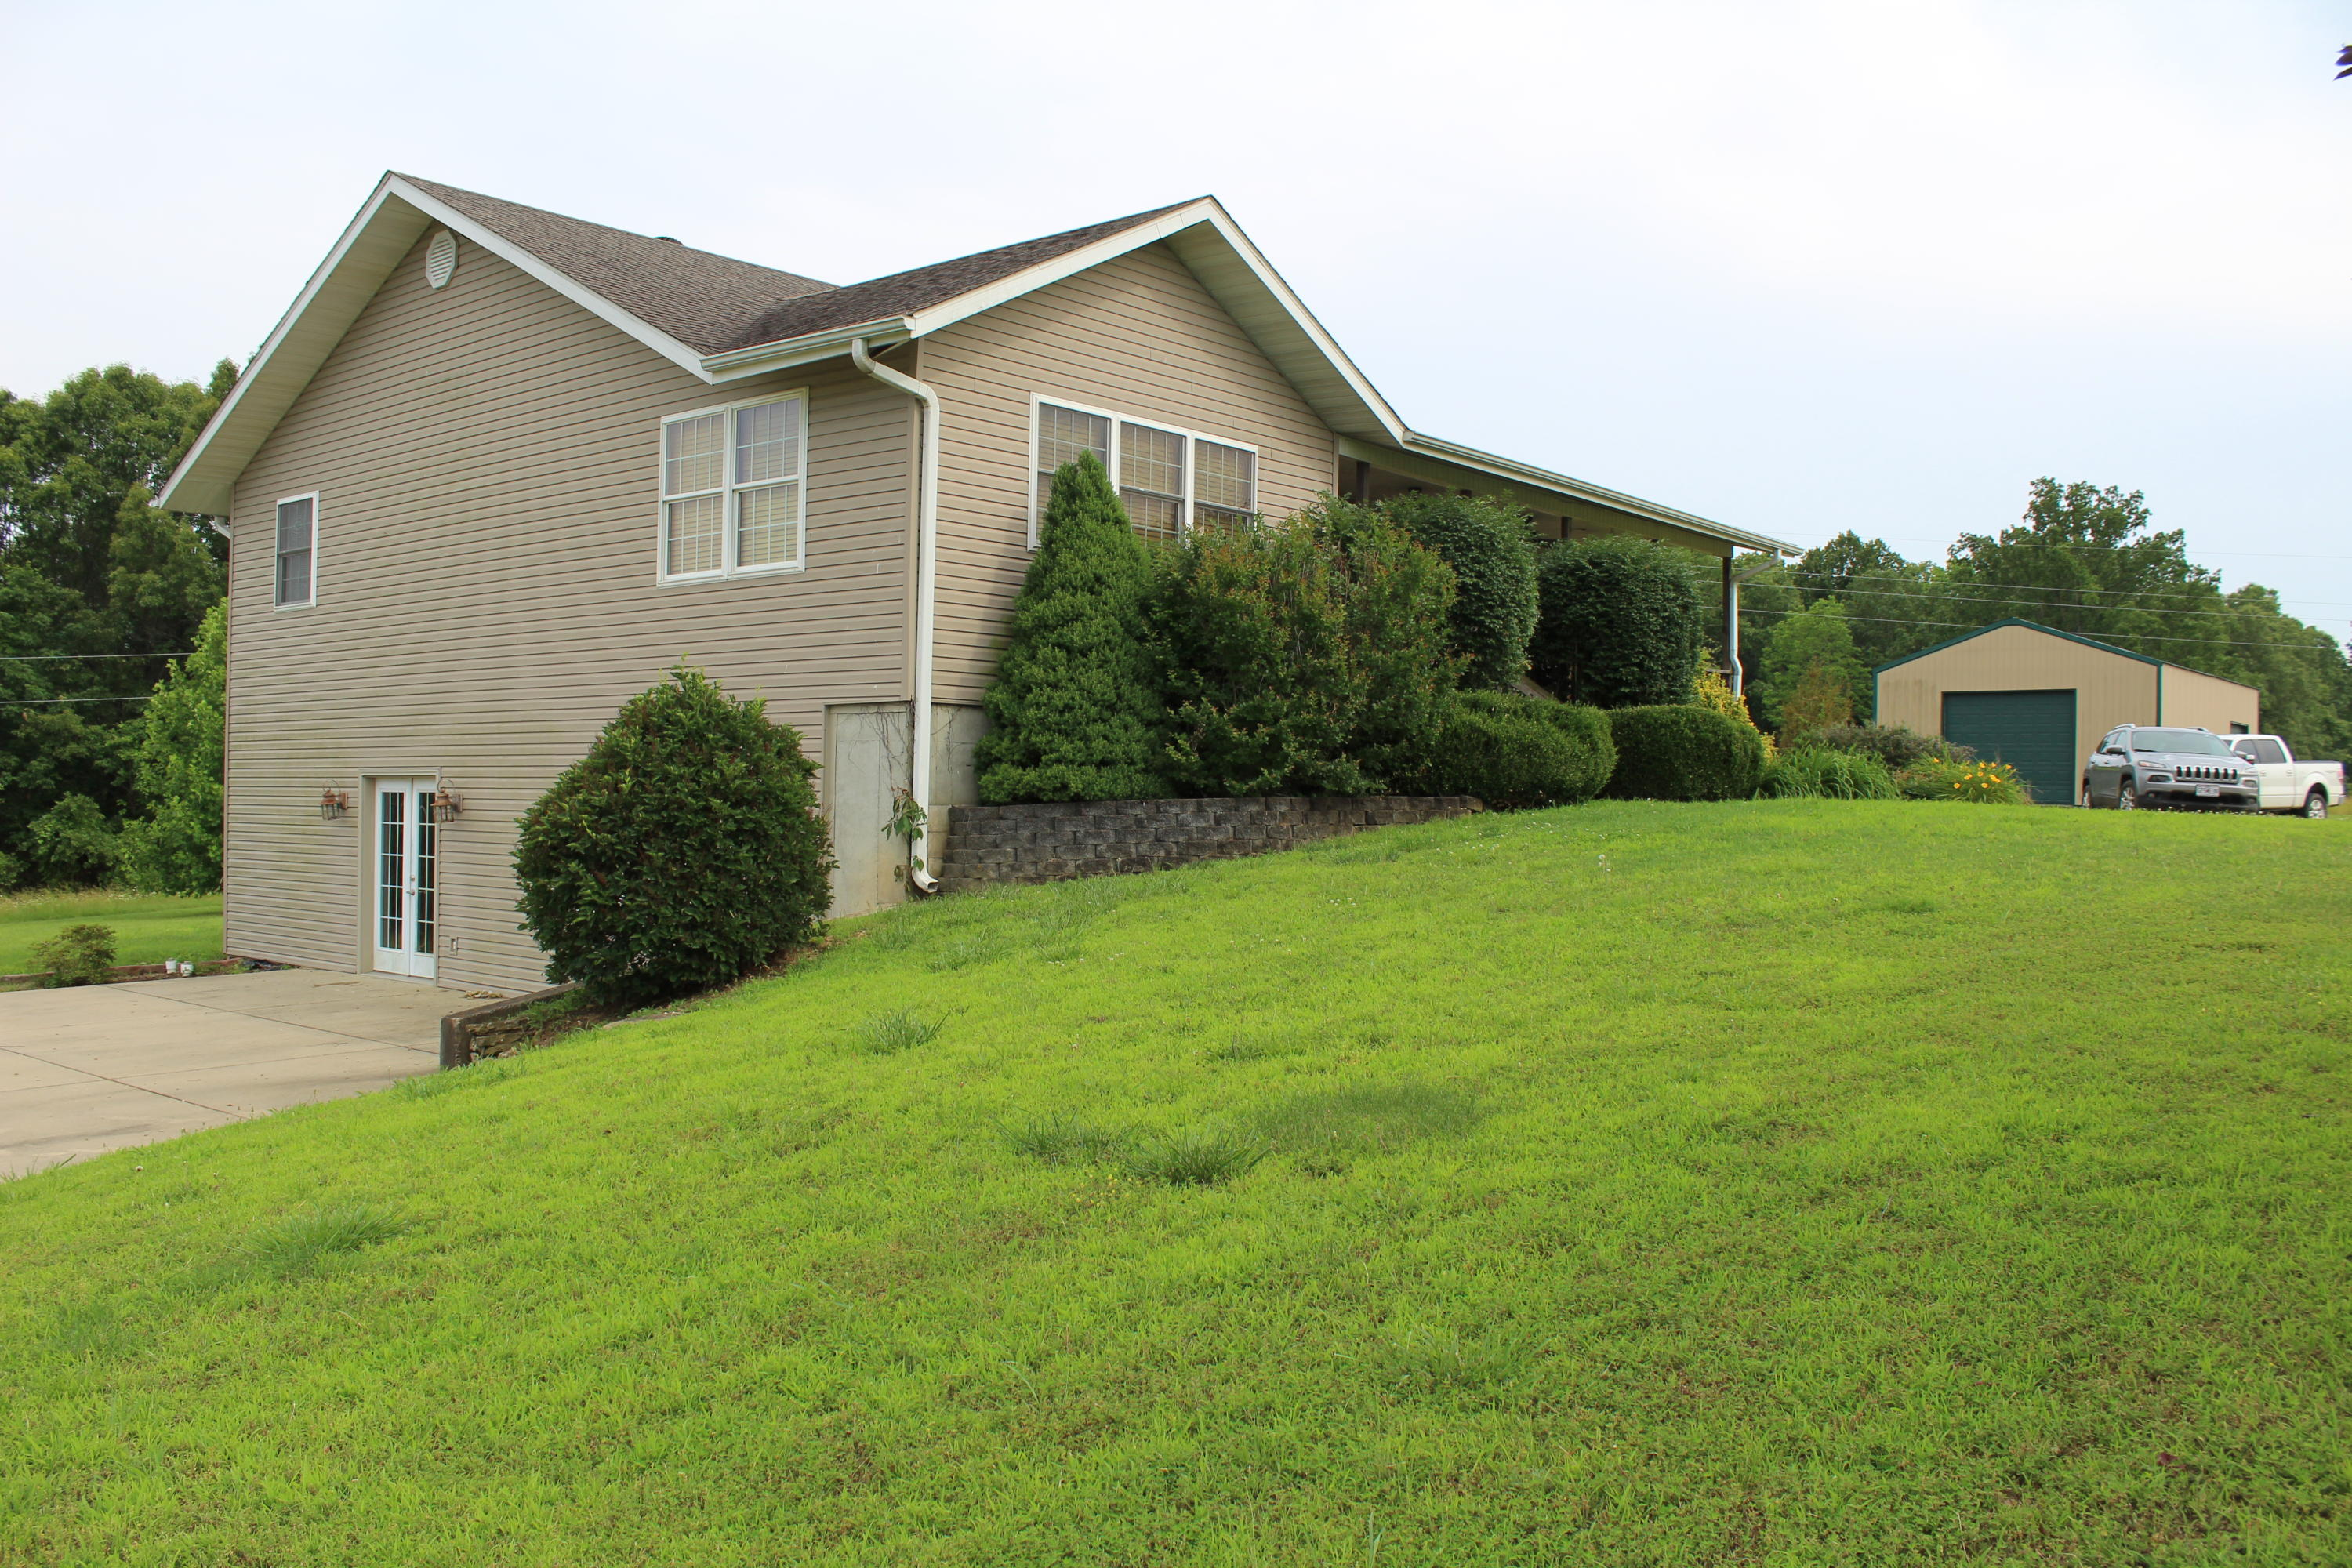 596 County Road Alton, MO 65606